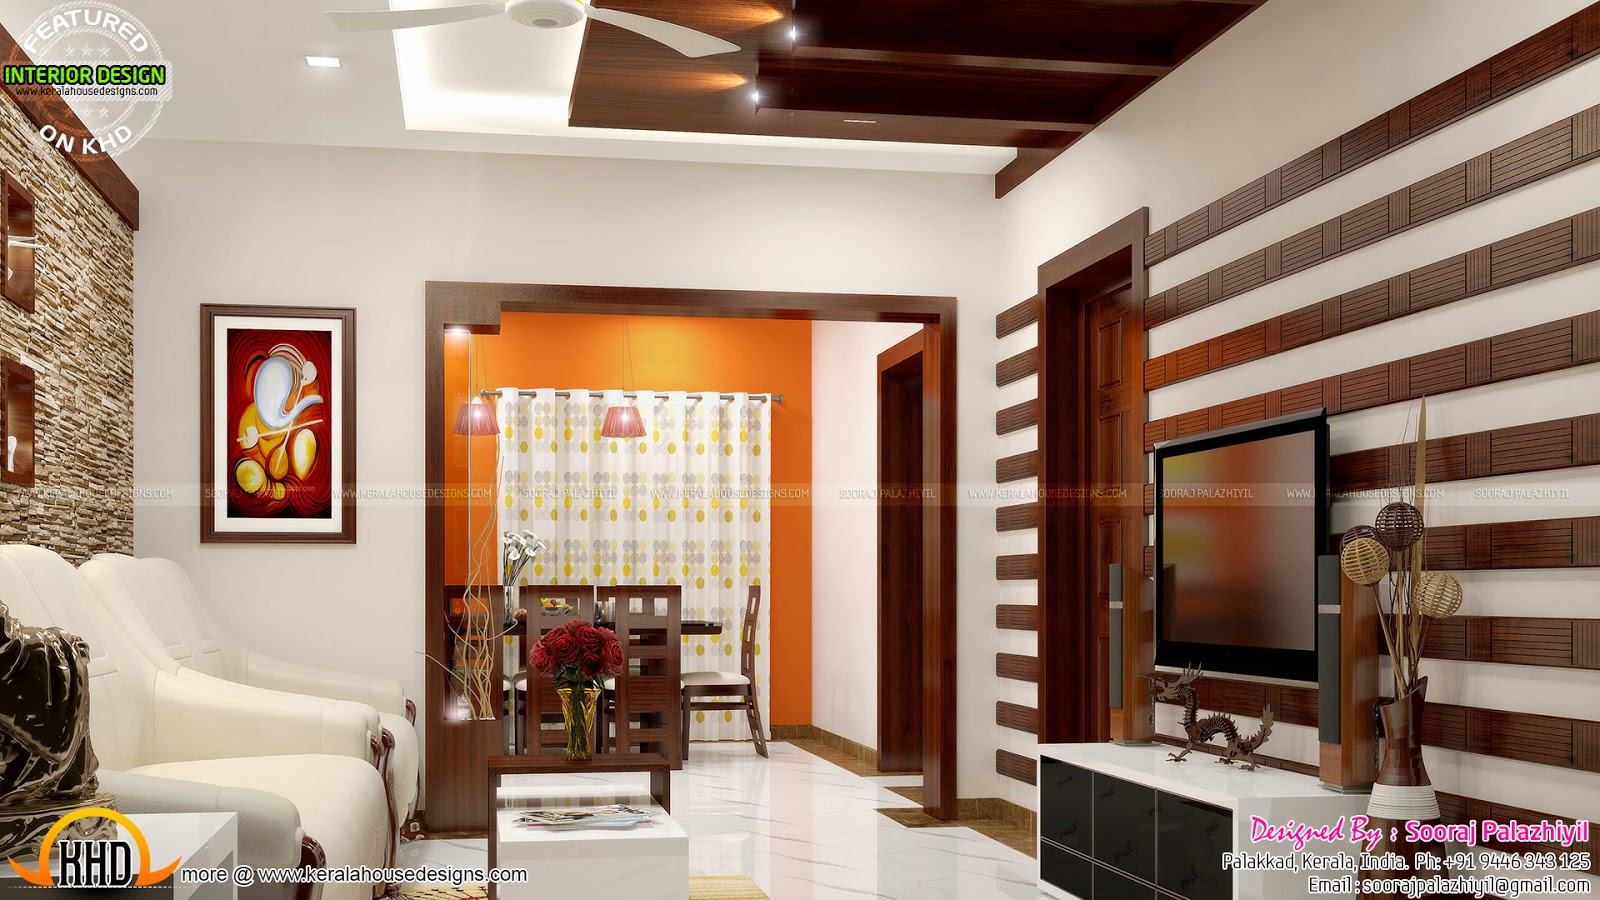 Apartment Interior Design India apartment interior design ideas india. interior design india small